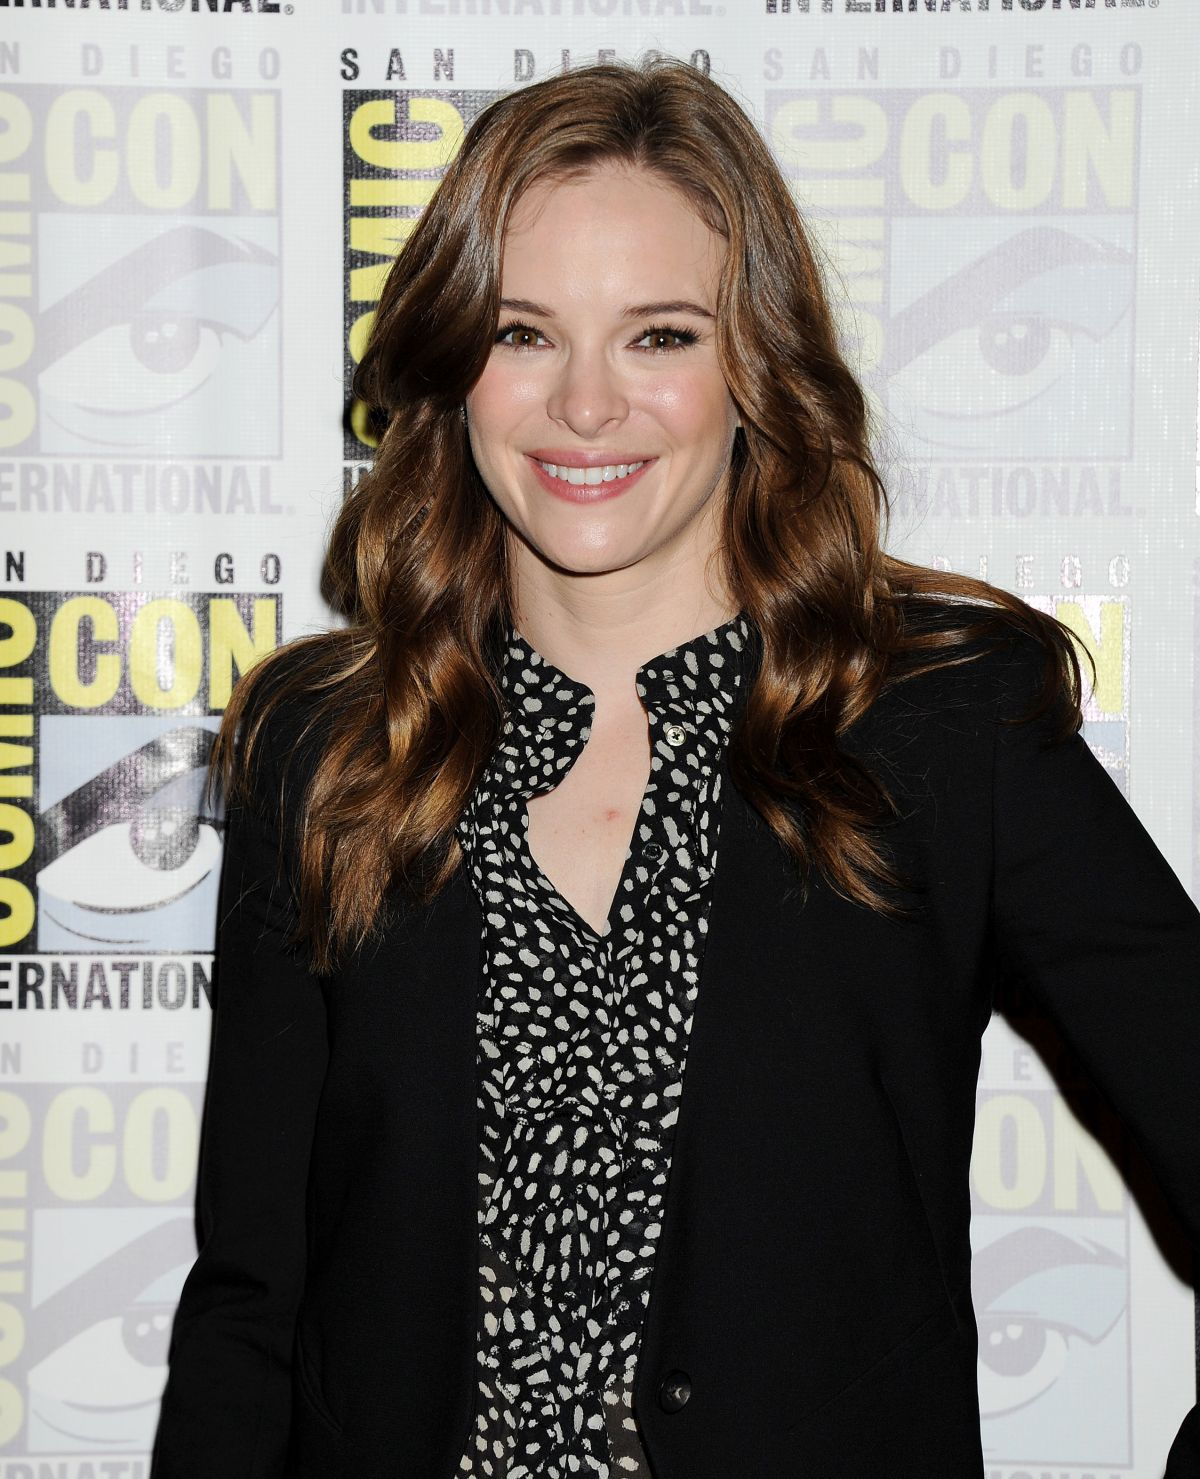 DANIELLE PANABAKER at The Flash Panel at 2014 Comic-con in San Diego